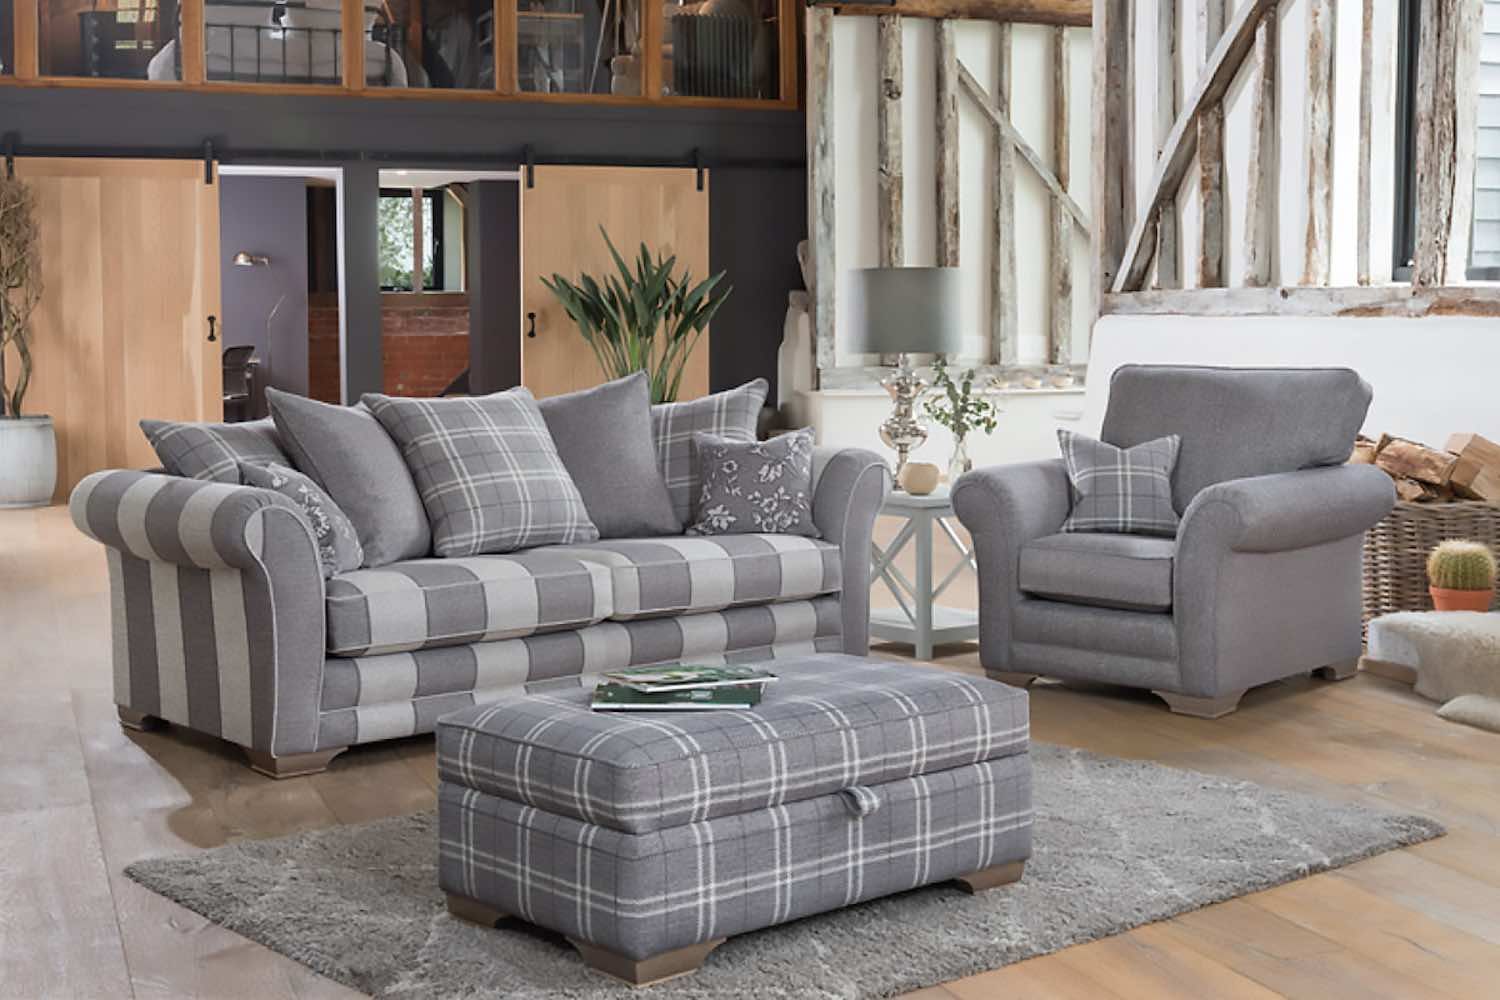 New sofa style from Alstons Upholstery